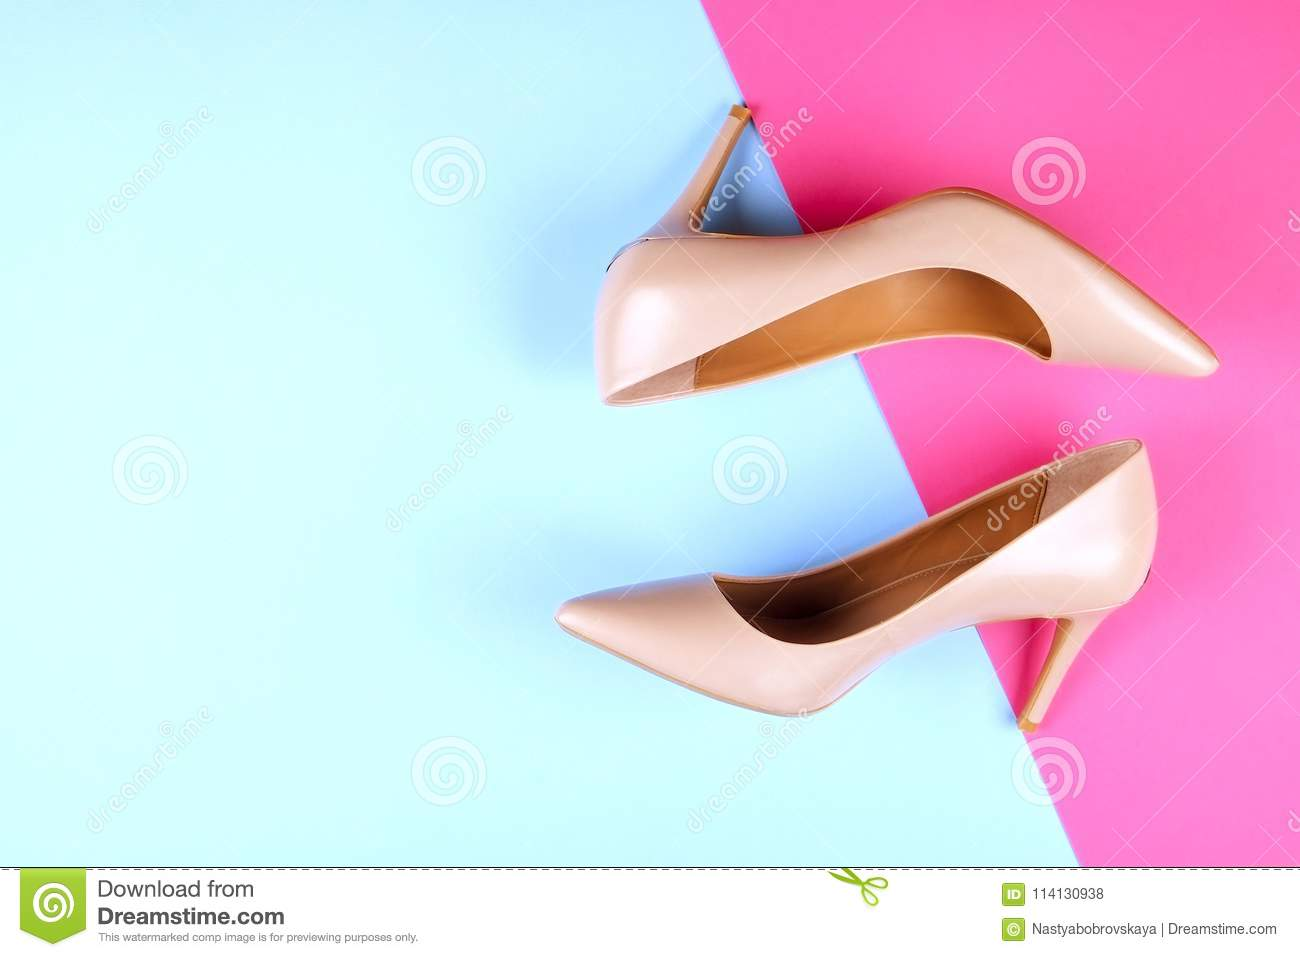 ad0d21d31 Top view of fashionable feminine medium heeled women`s leather shoes of  pastel colors on heels / wedge for spring-summer season.